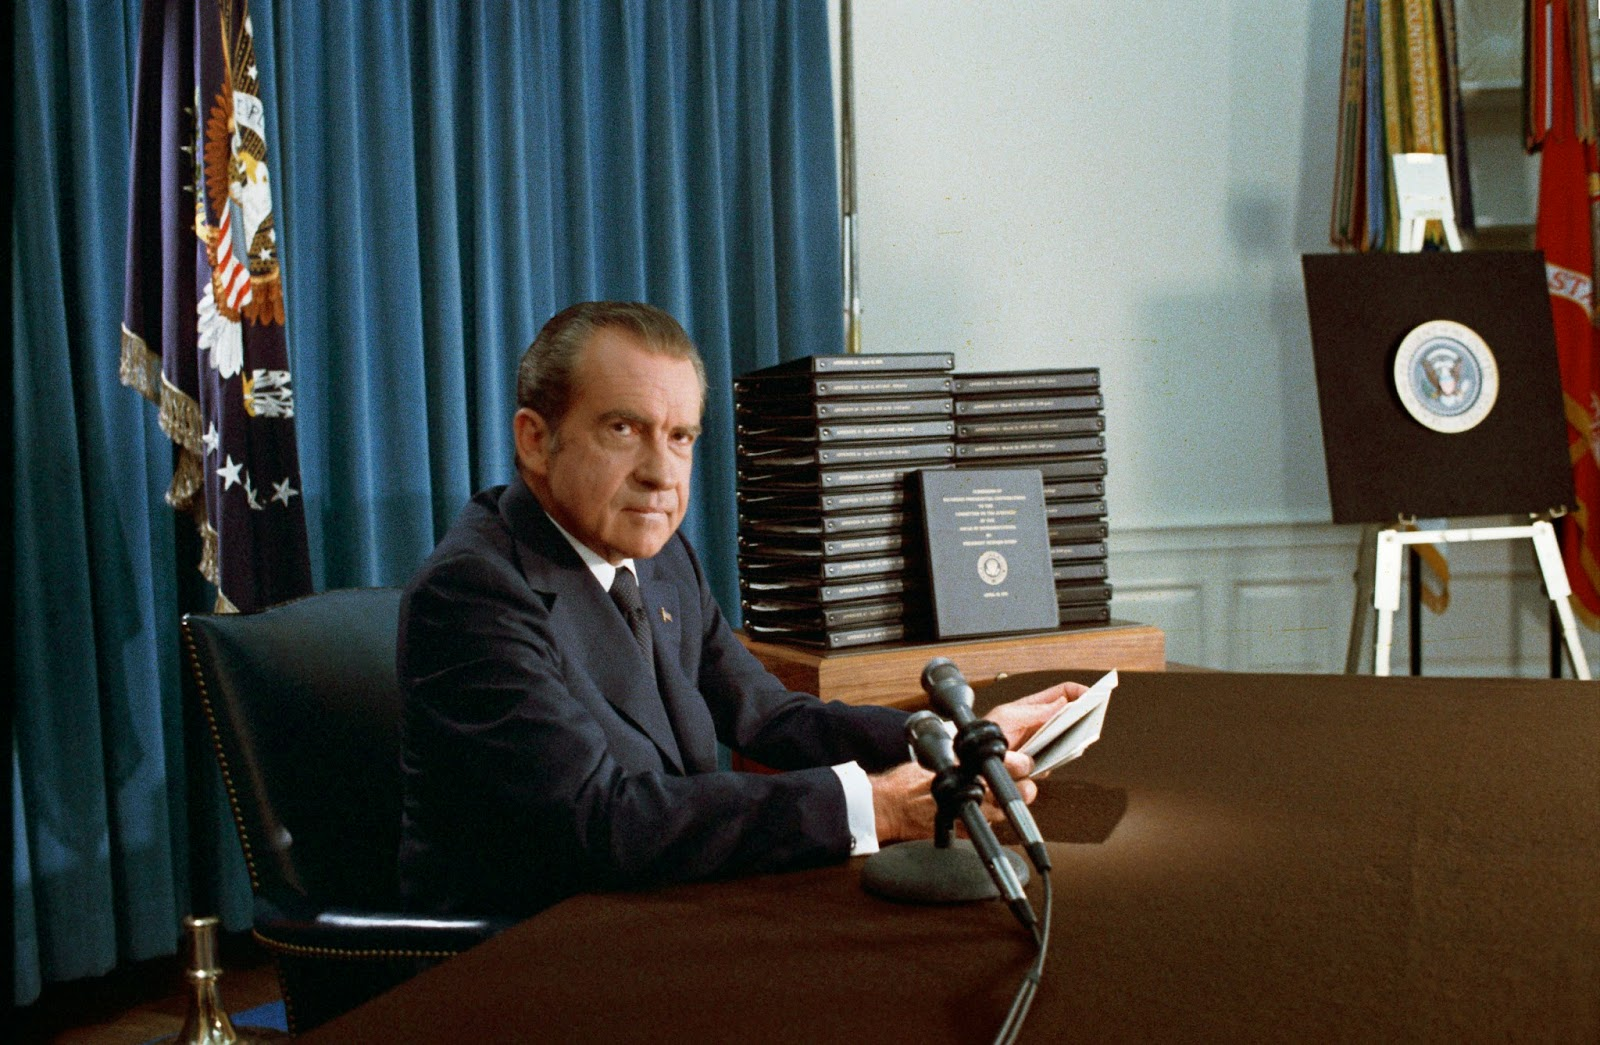 Nixon releasing edited transcripts of Watergate transcripts, 1974